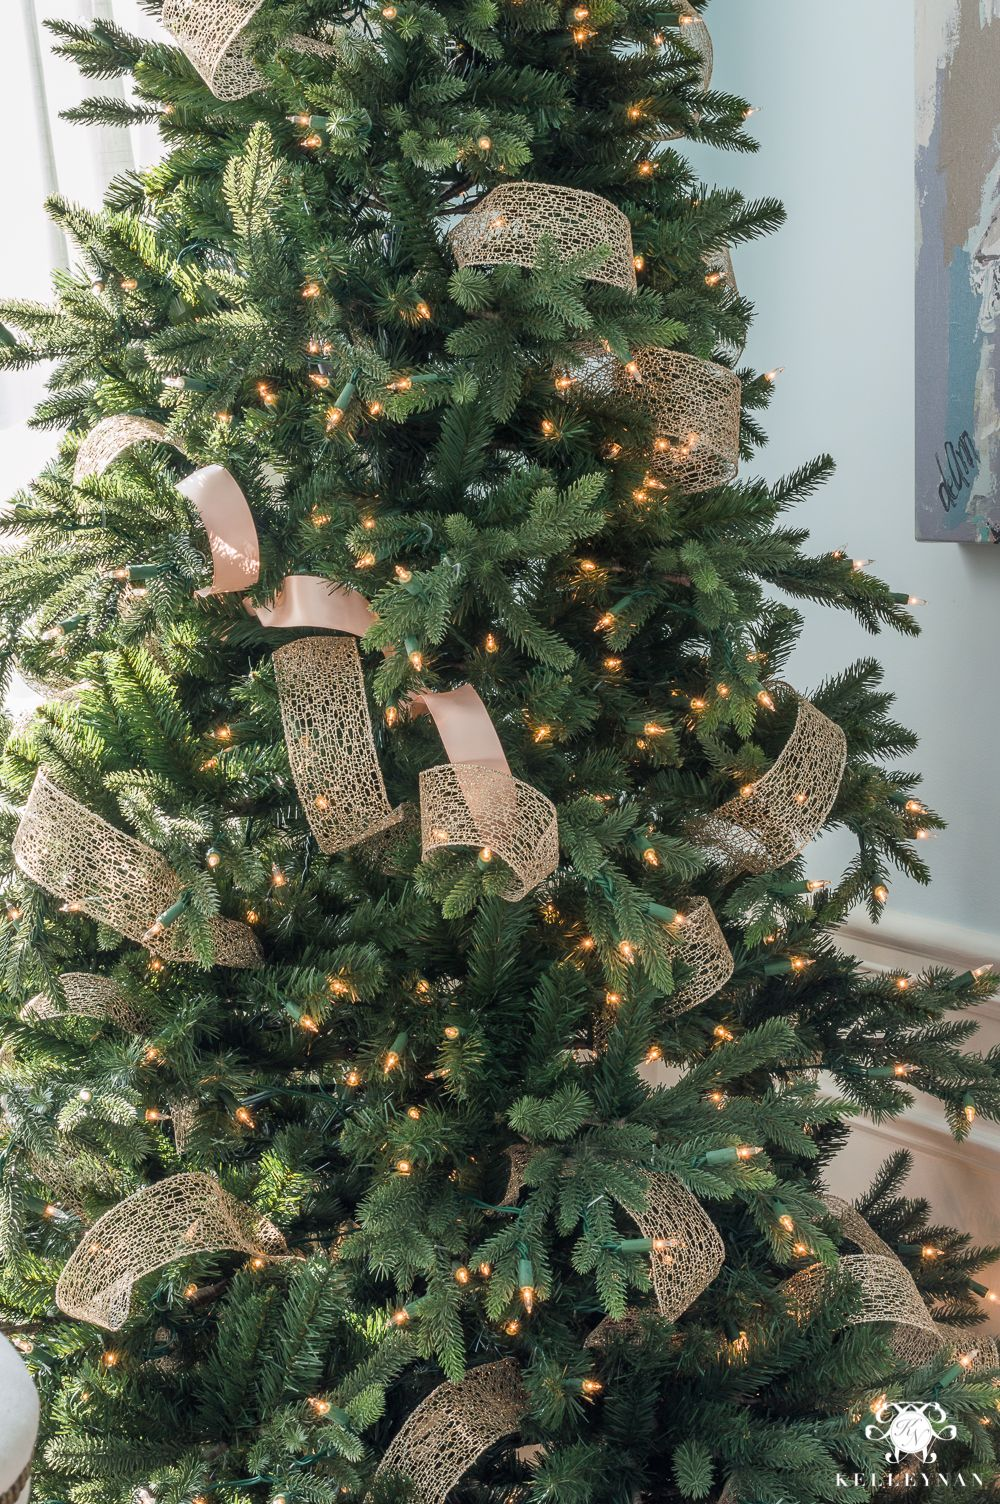 How to Decorate a Christmas Tree with Ribbon #ribbononchristmastreeideas